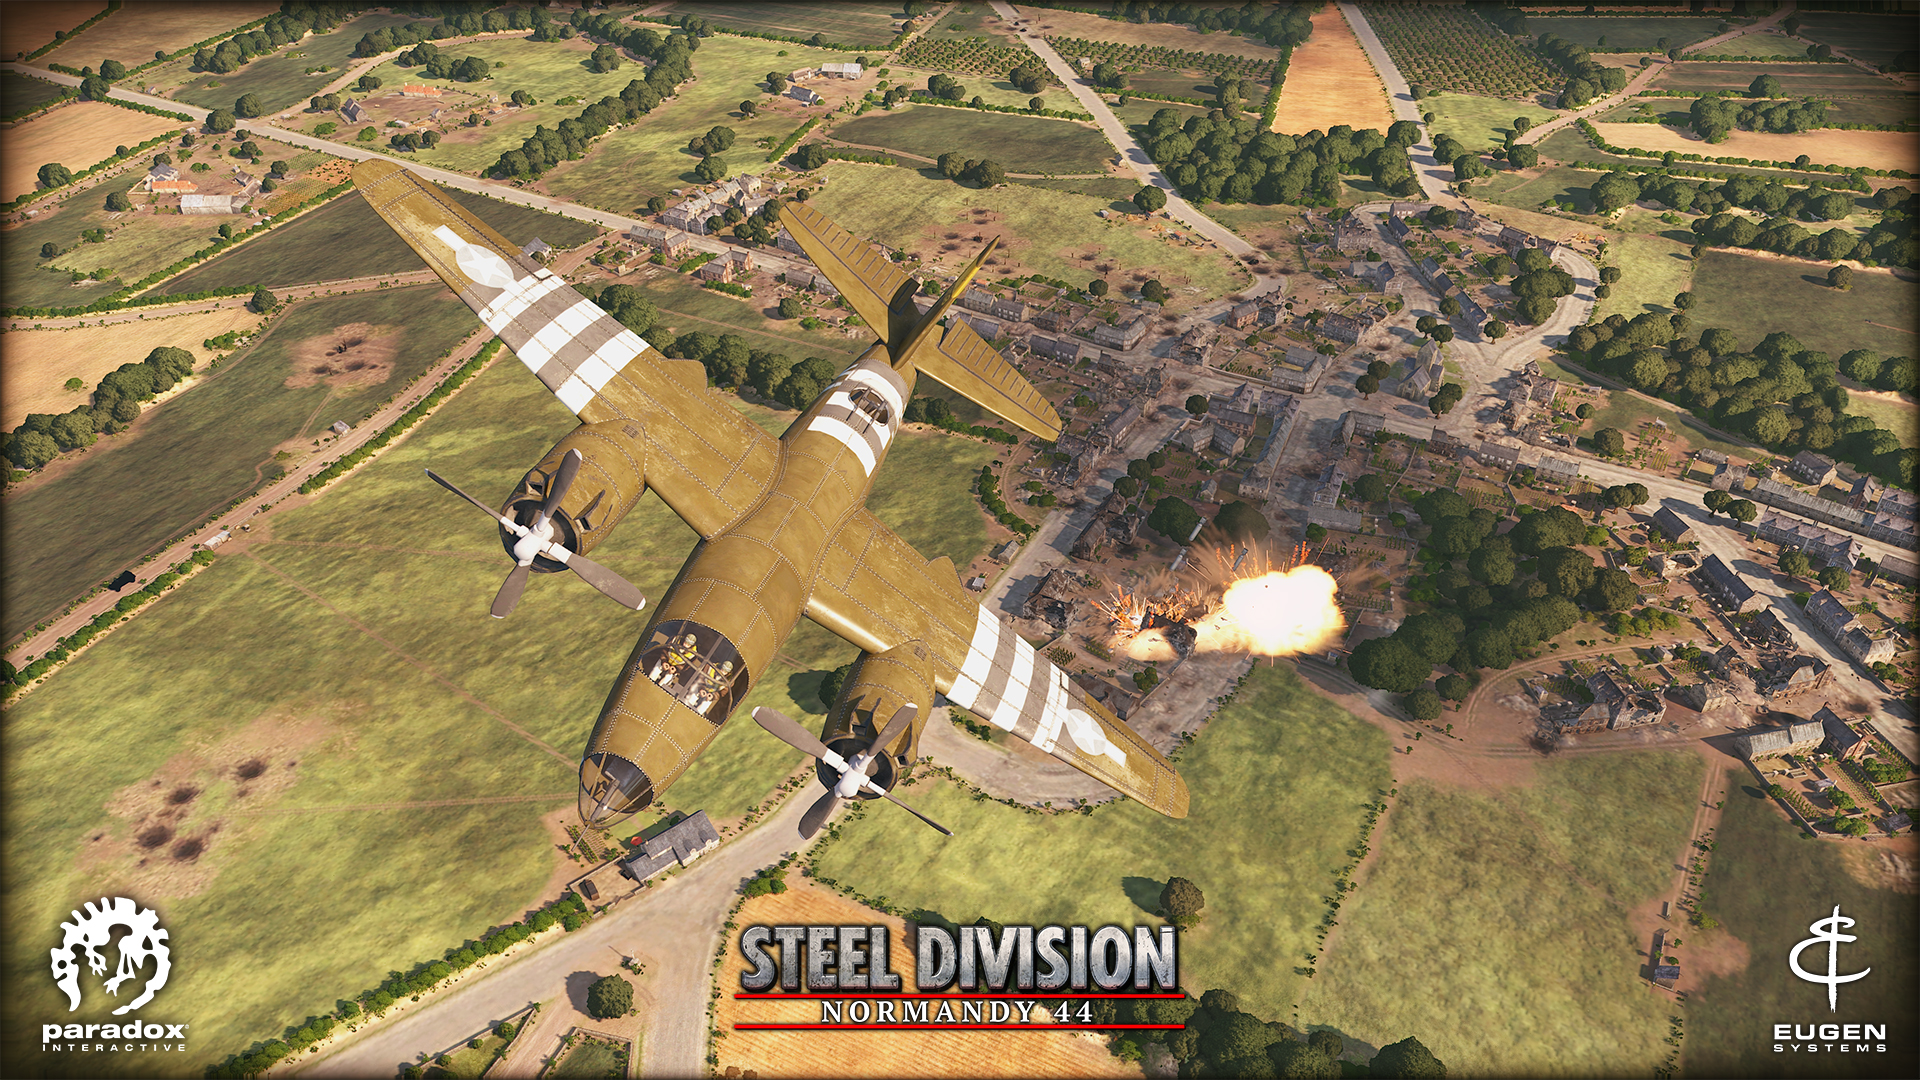 Steel Division Normandy 44 101st Airborne